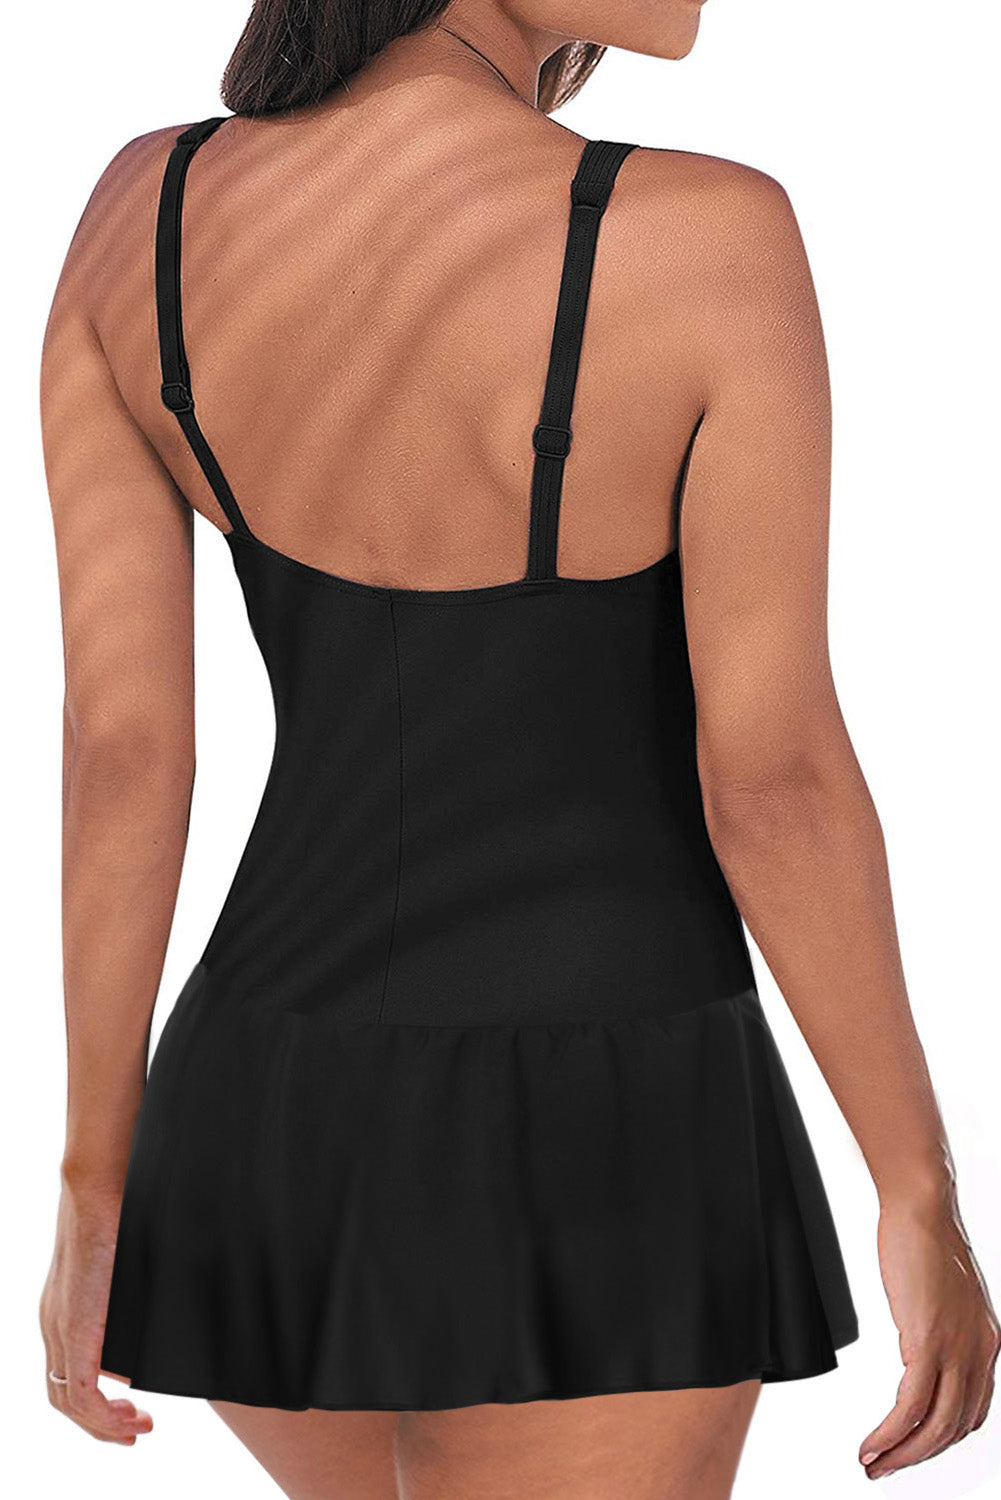 Black Padded Push up One Piece Swimdress